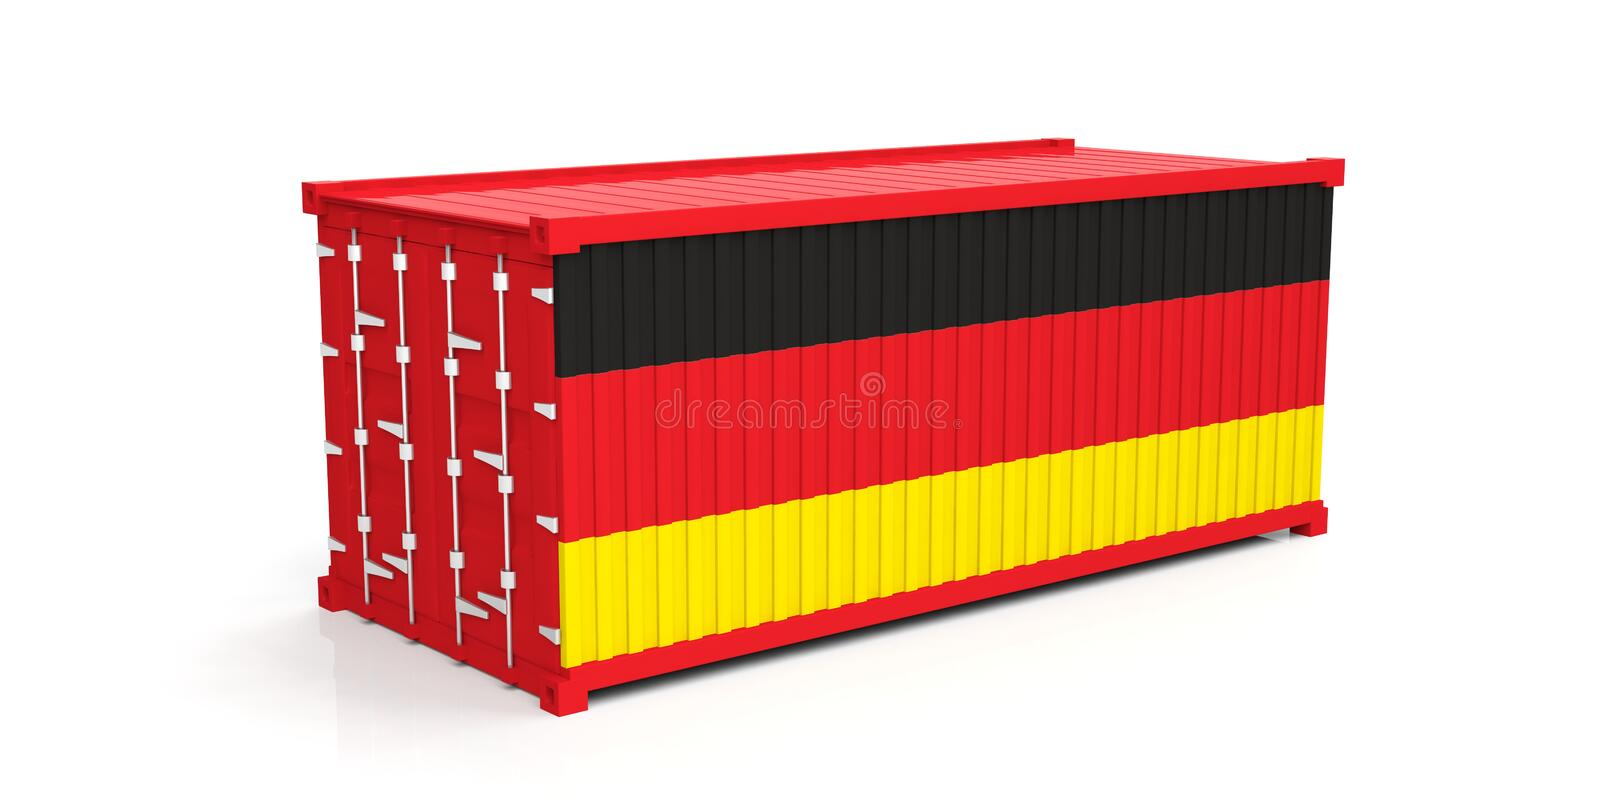 Germany flag on container. 3d illustration vector illustration